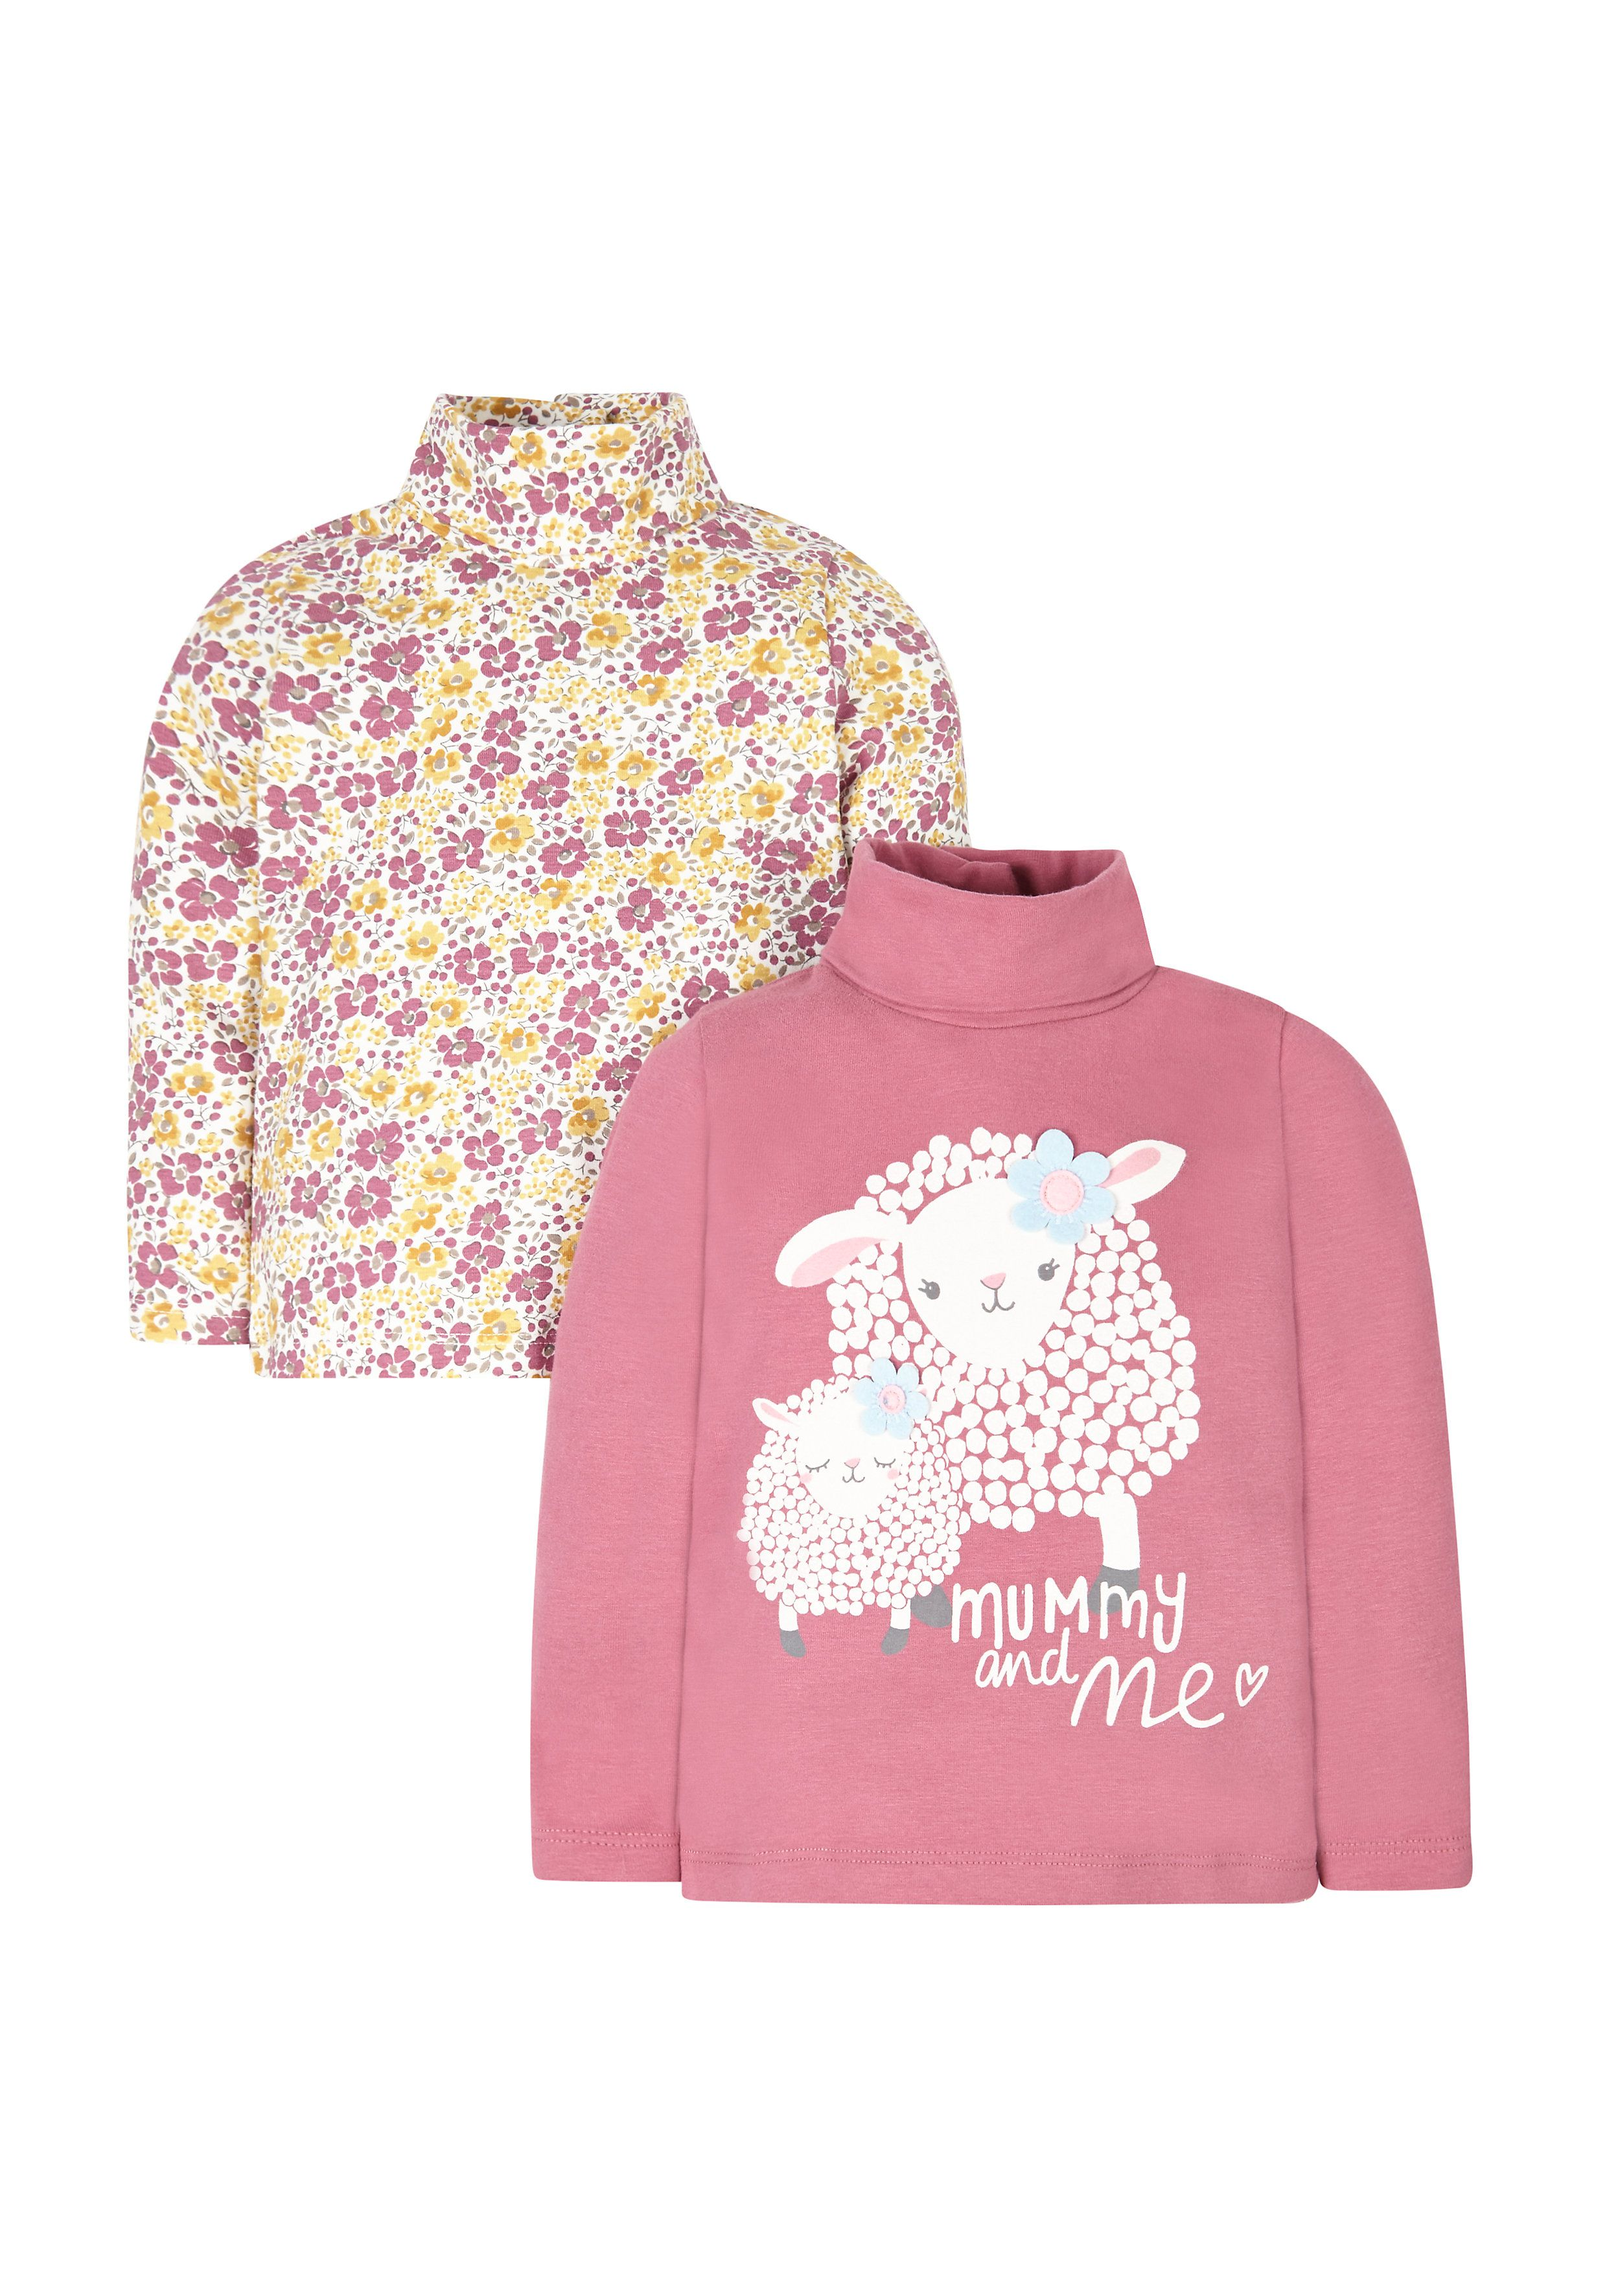 Mothercare   Pink And Floral Roll Neck Tops - 2 Pack